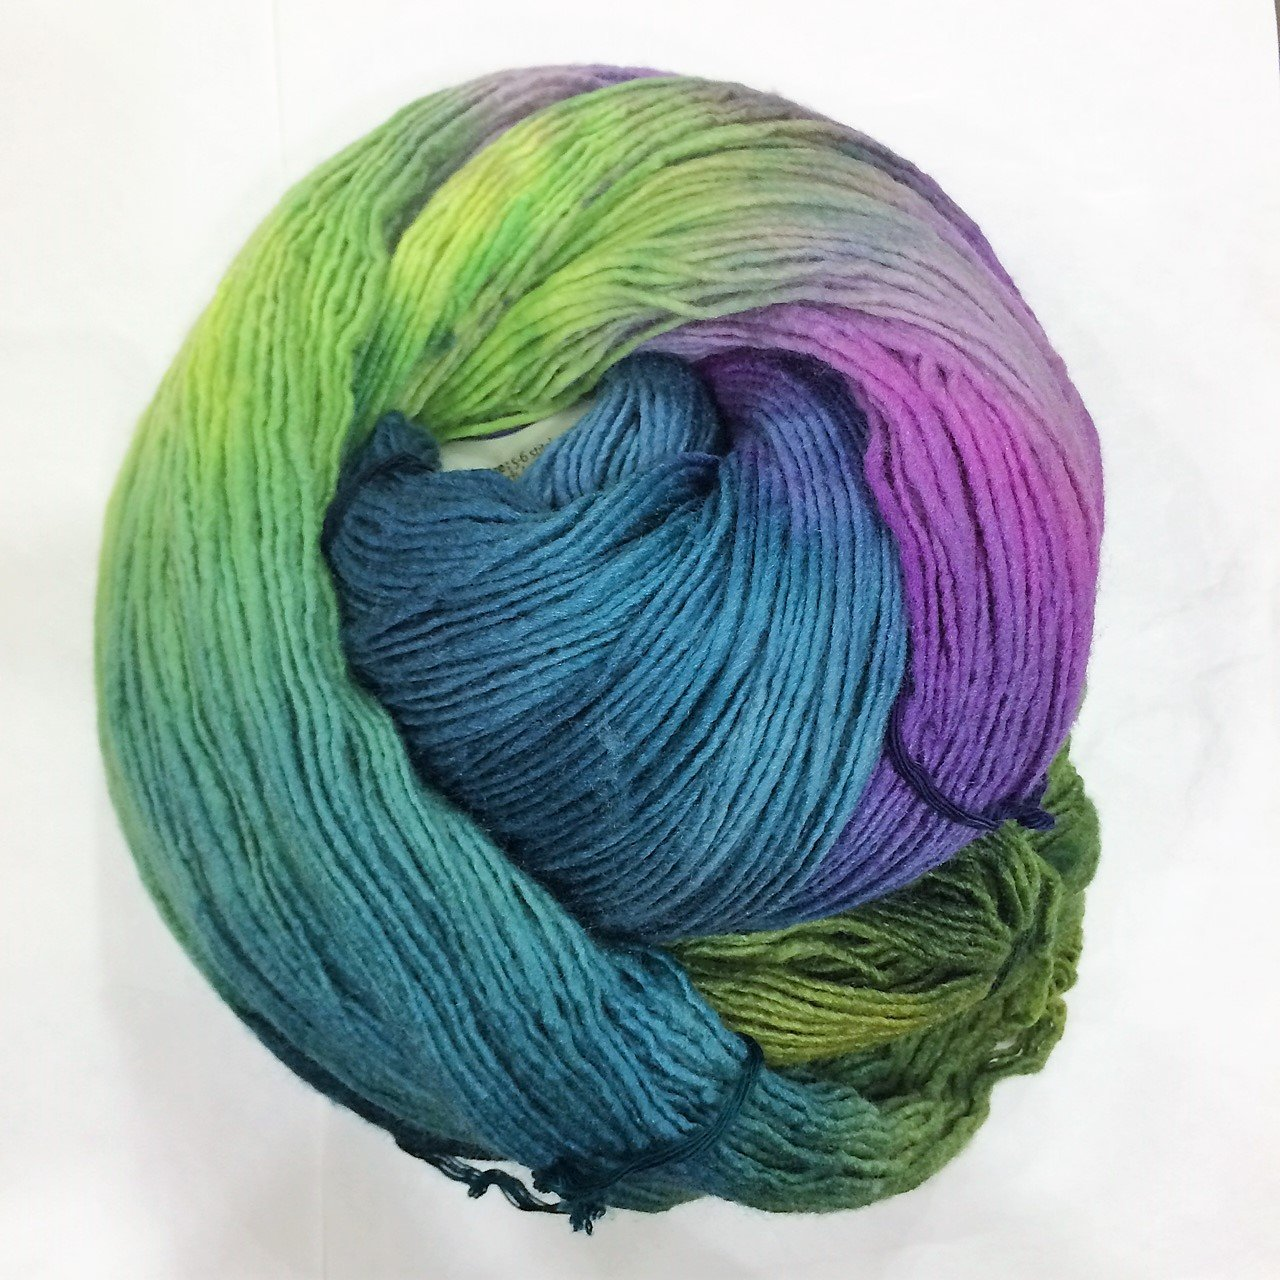 Blue Moon Fiber Arts Single Silky Targhee